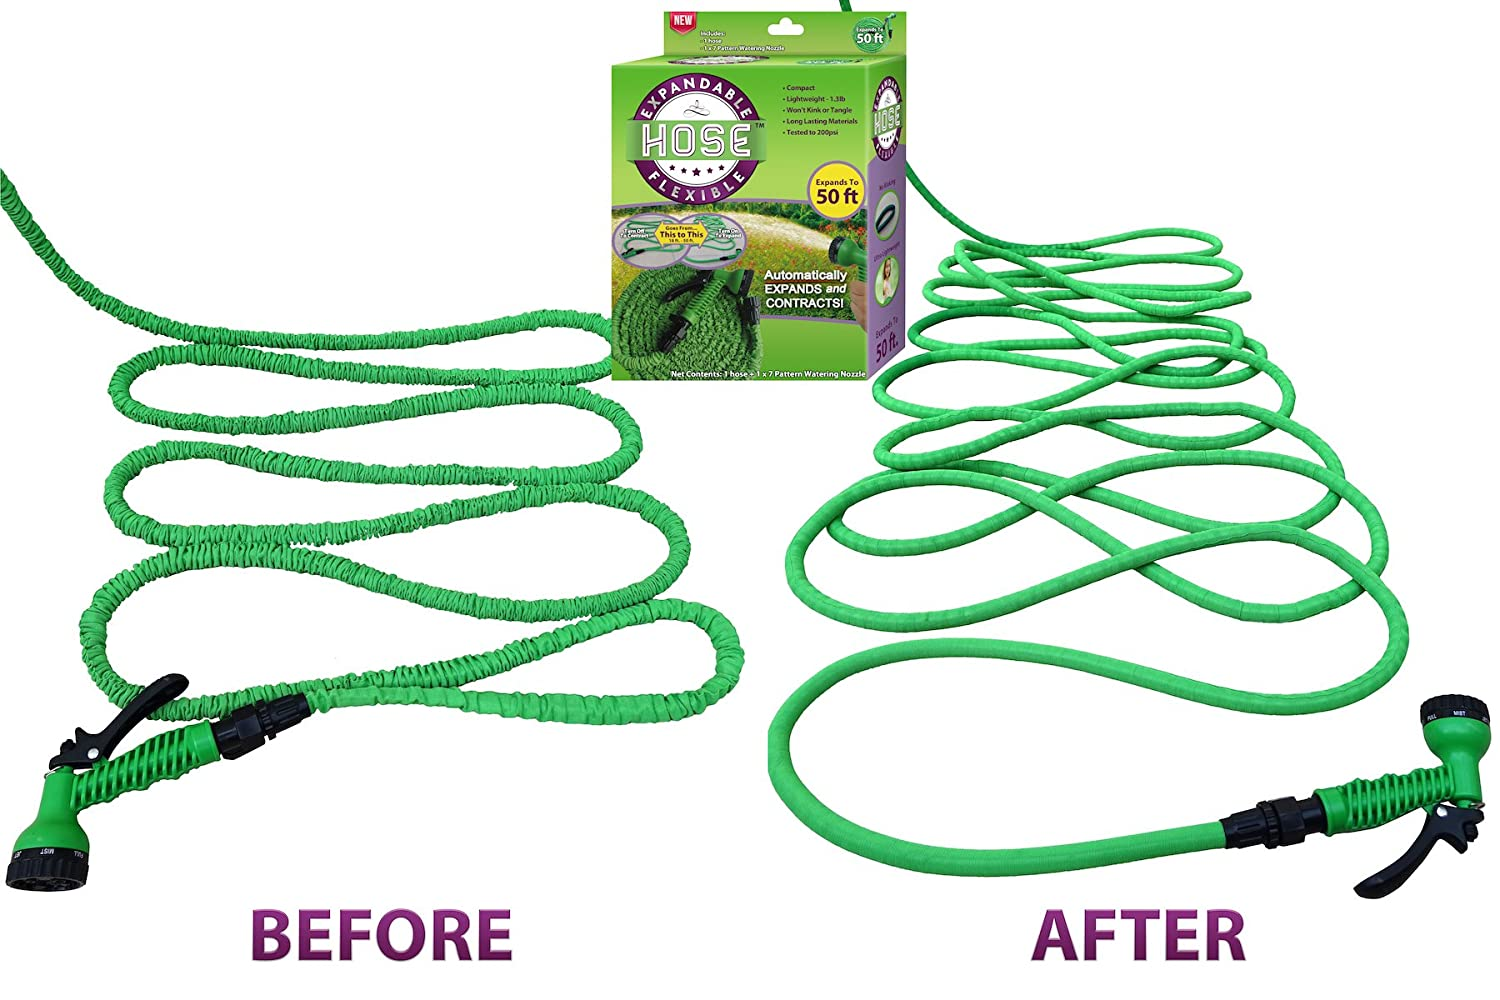 #1 Expandable Garden Water Hose & Nozzle Combo, Expanding From 17' to 50ft, Three Times its Length – This Flexible High Volume Garden Hose is Strong Lightweight Natural Rubber and Never Kinks or Tangles. The S